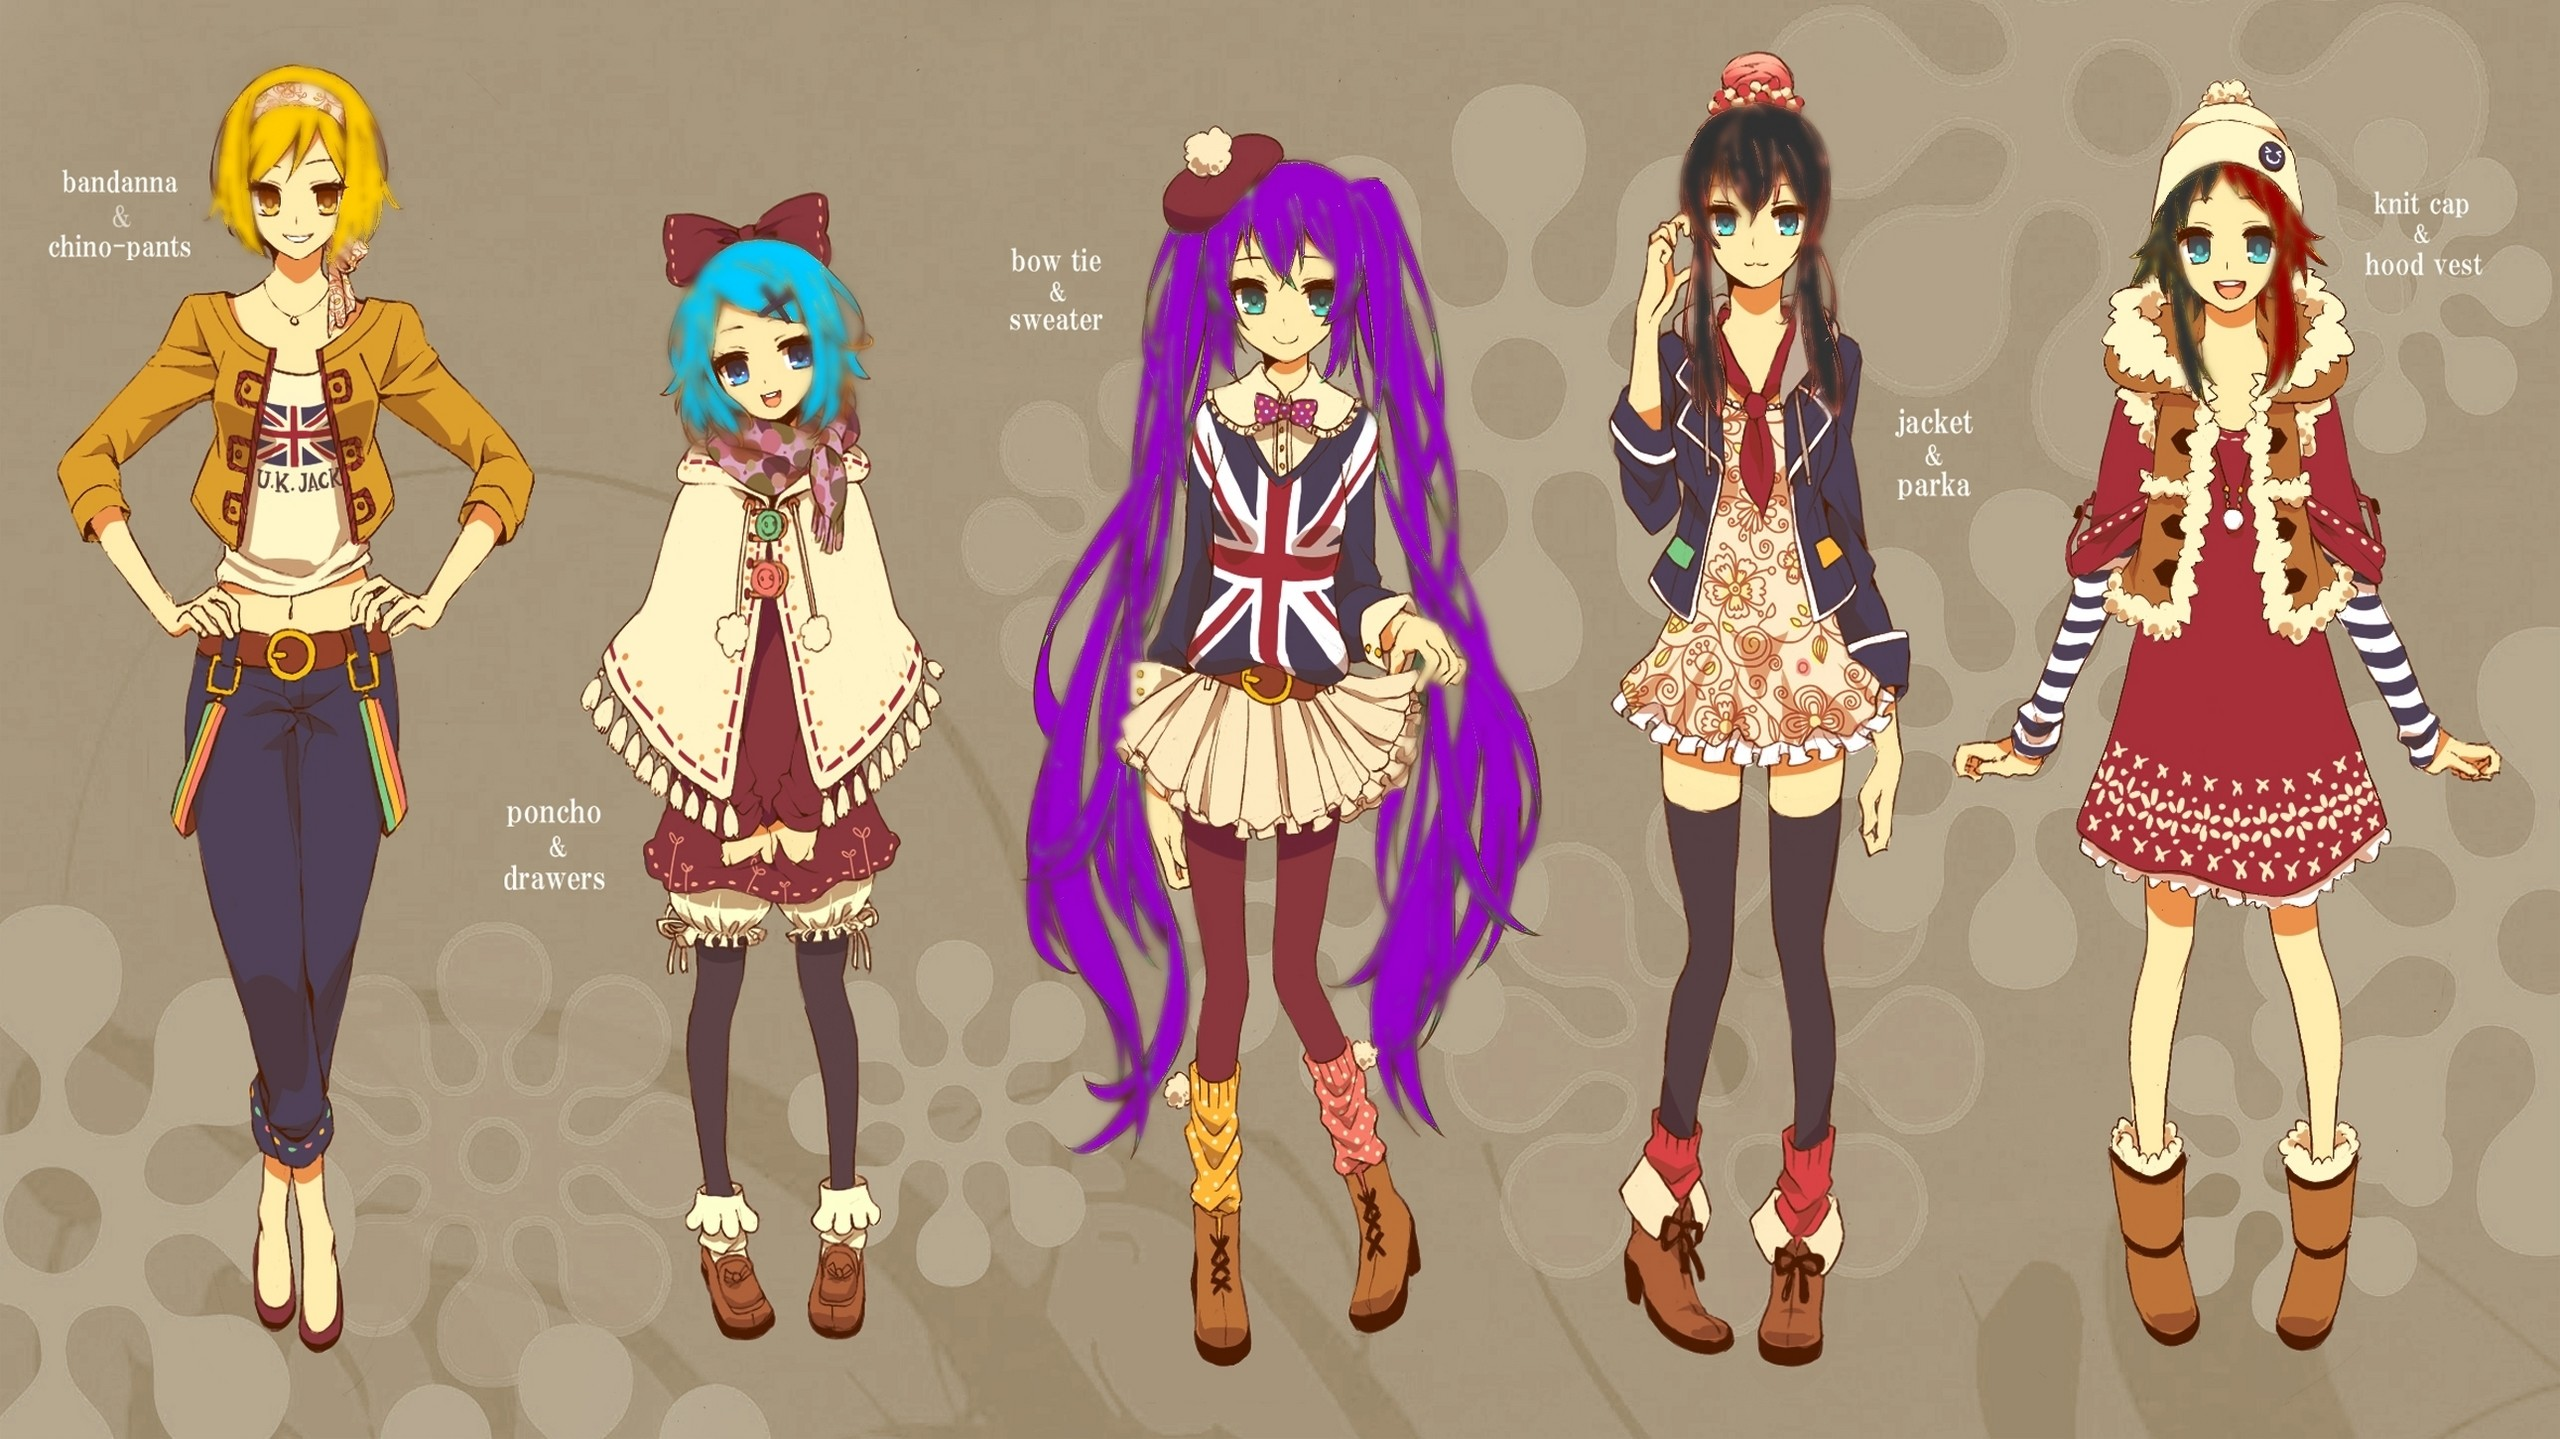 2560x1439 Sonica, Rima, Mina, Sonic, and Shadow images .:Request:. Year's New Styles!  HD wallpaper and background photos